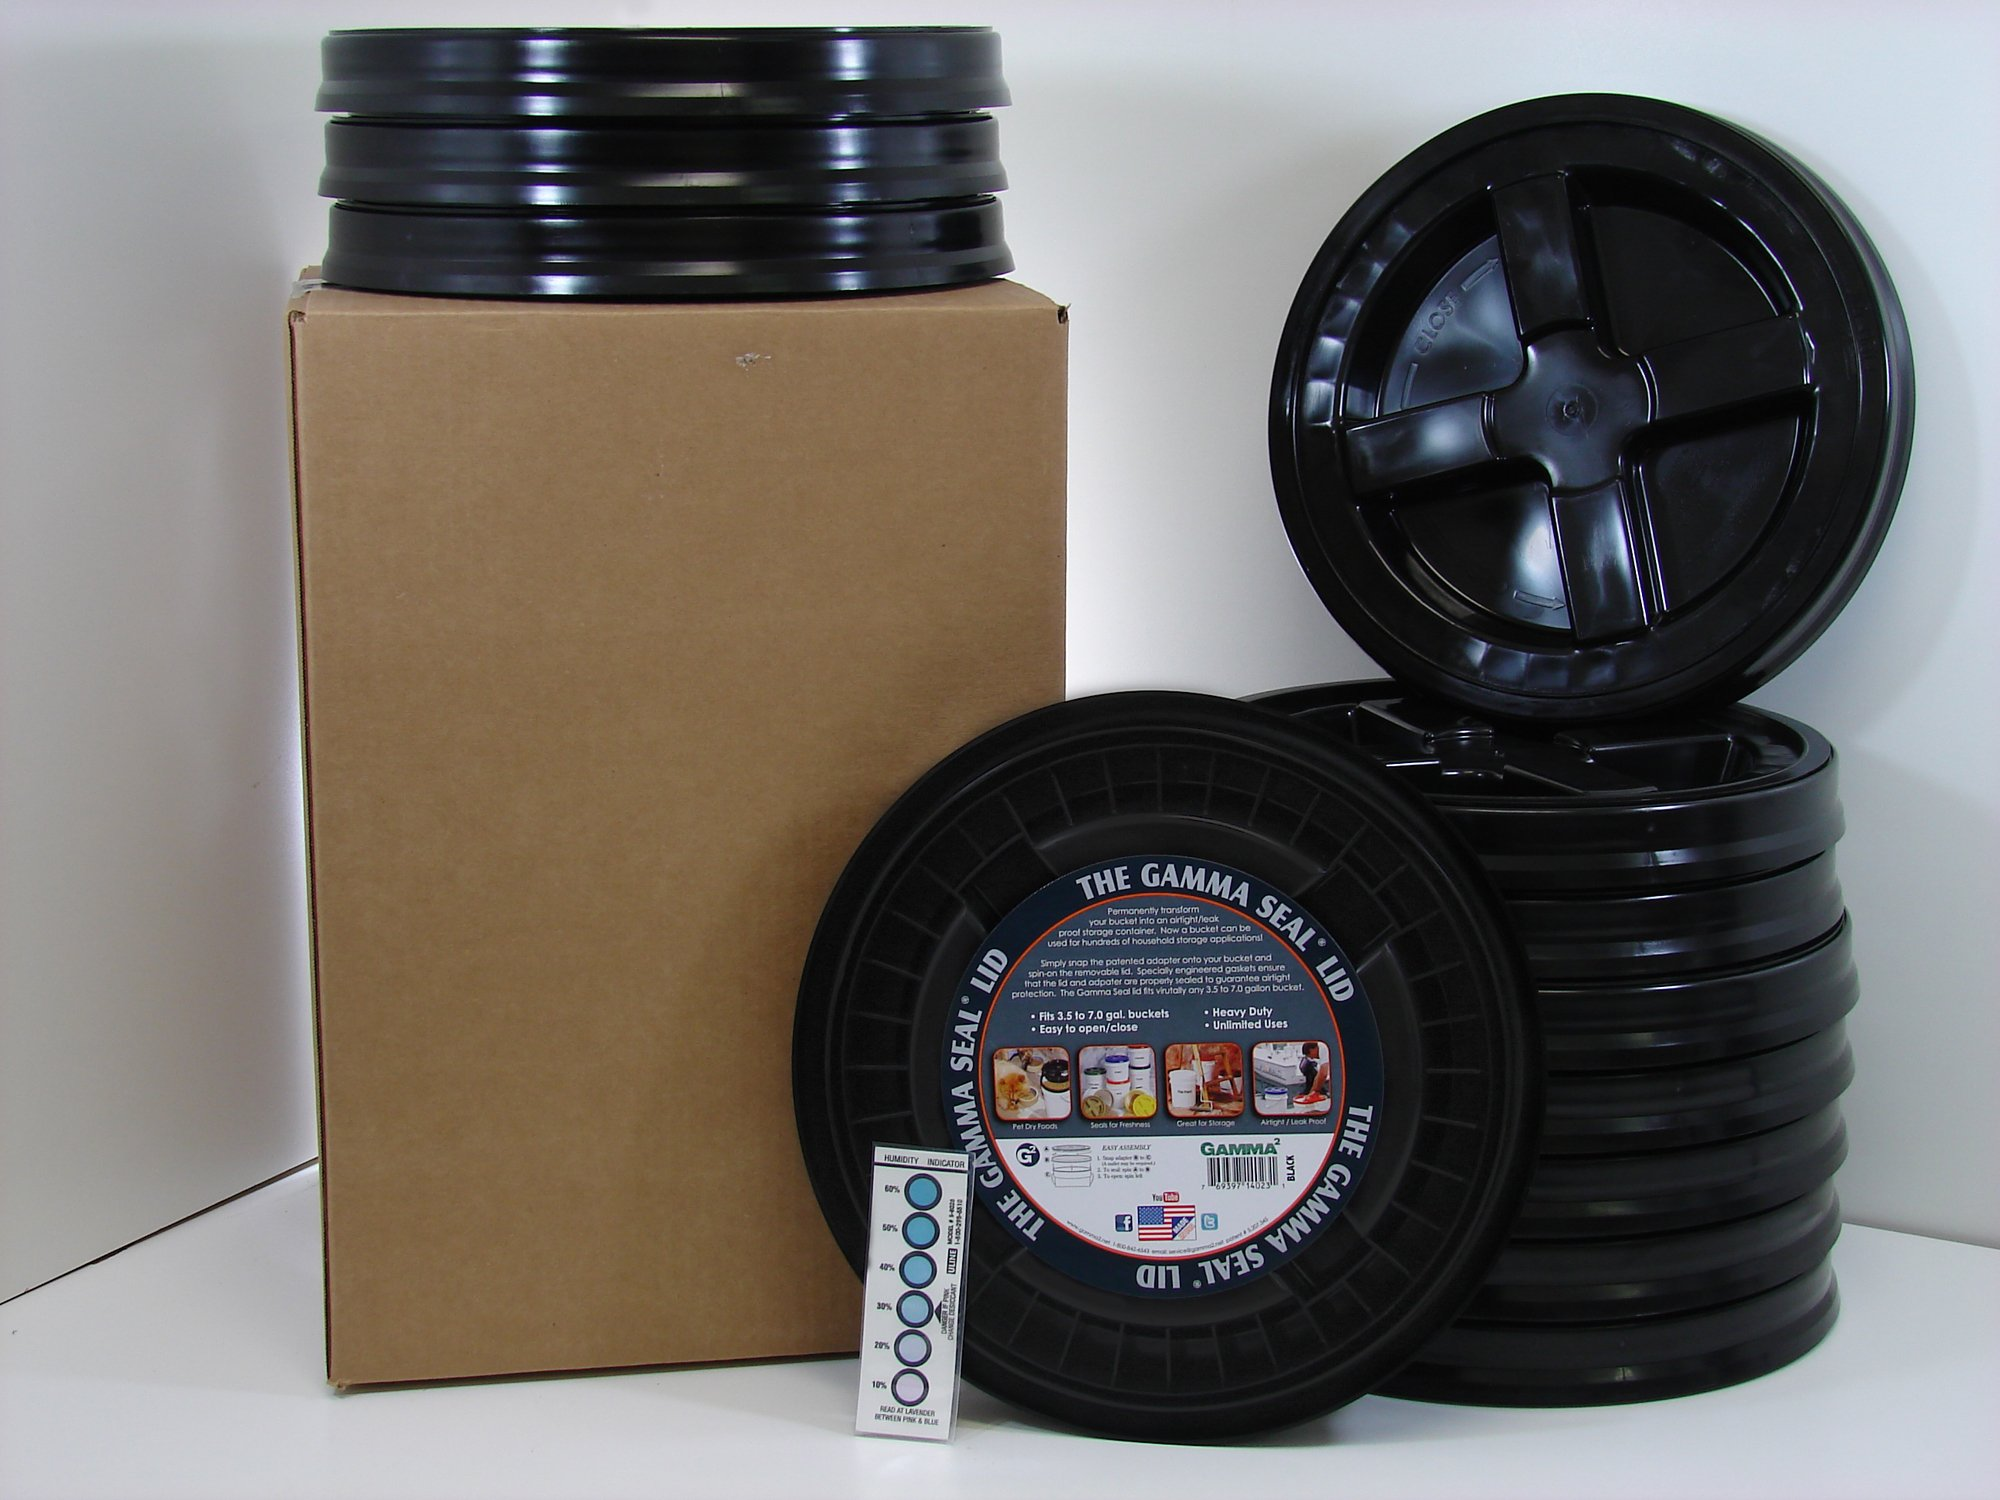 Gamma Seal Lid, Black, 12 Pack - New! - Boxed! - 5 Gallon Bucket Lids (Fits 3.5, 5, 6, 7 Gal.) Storage Container Lid